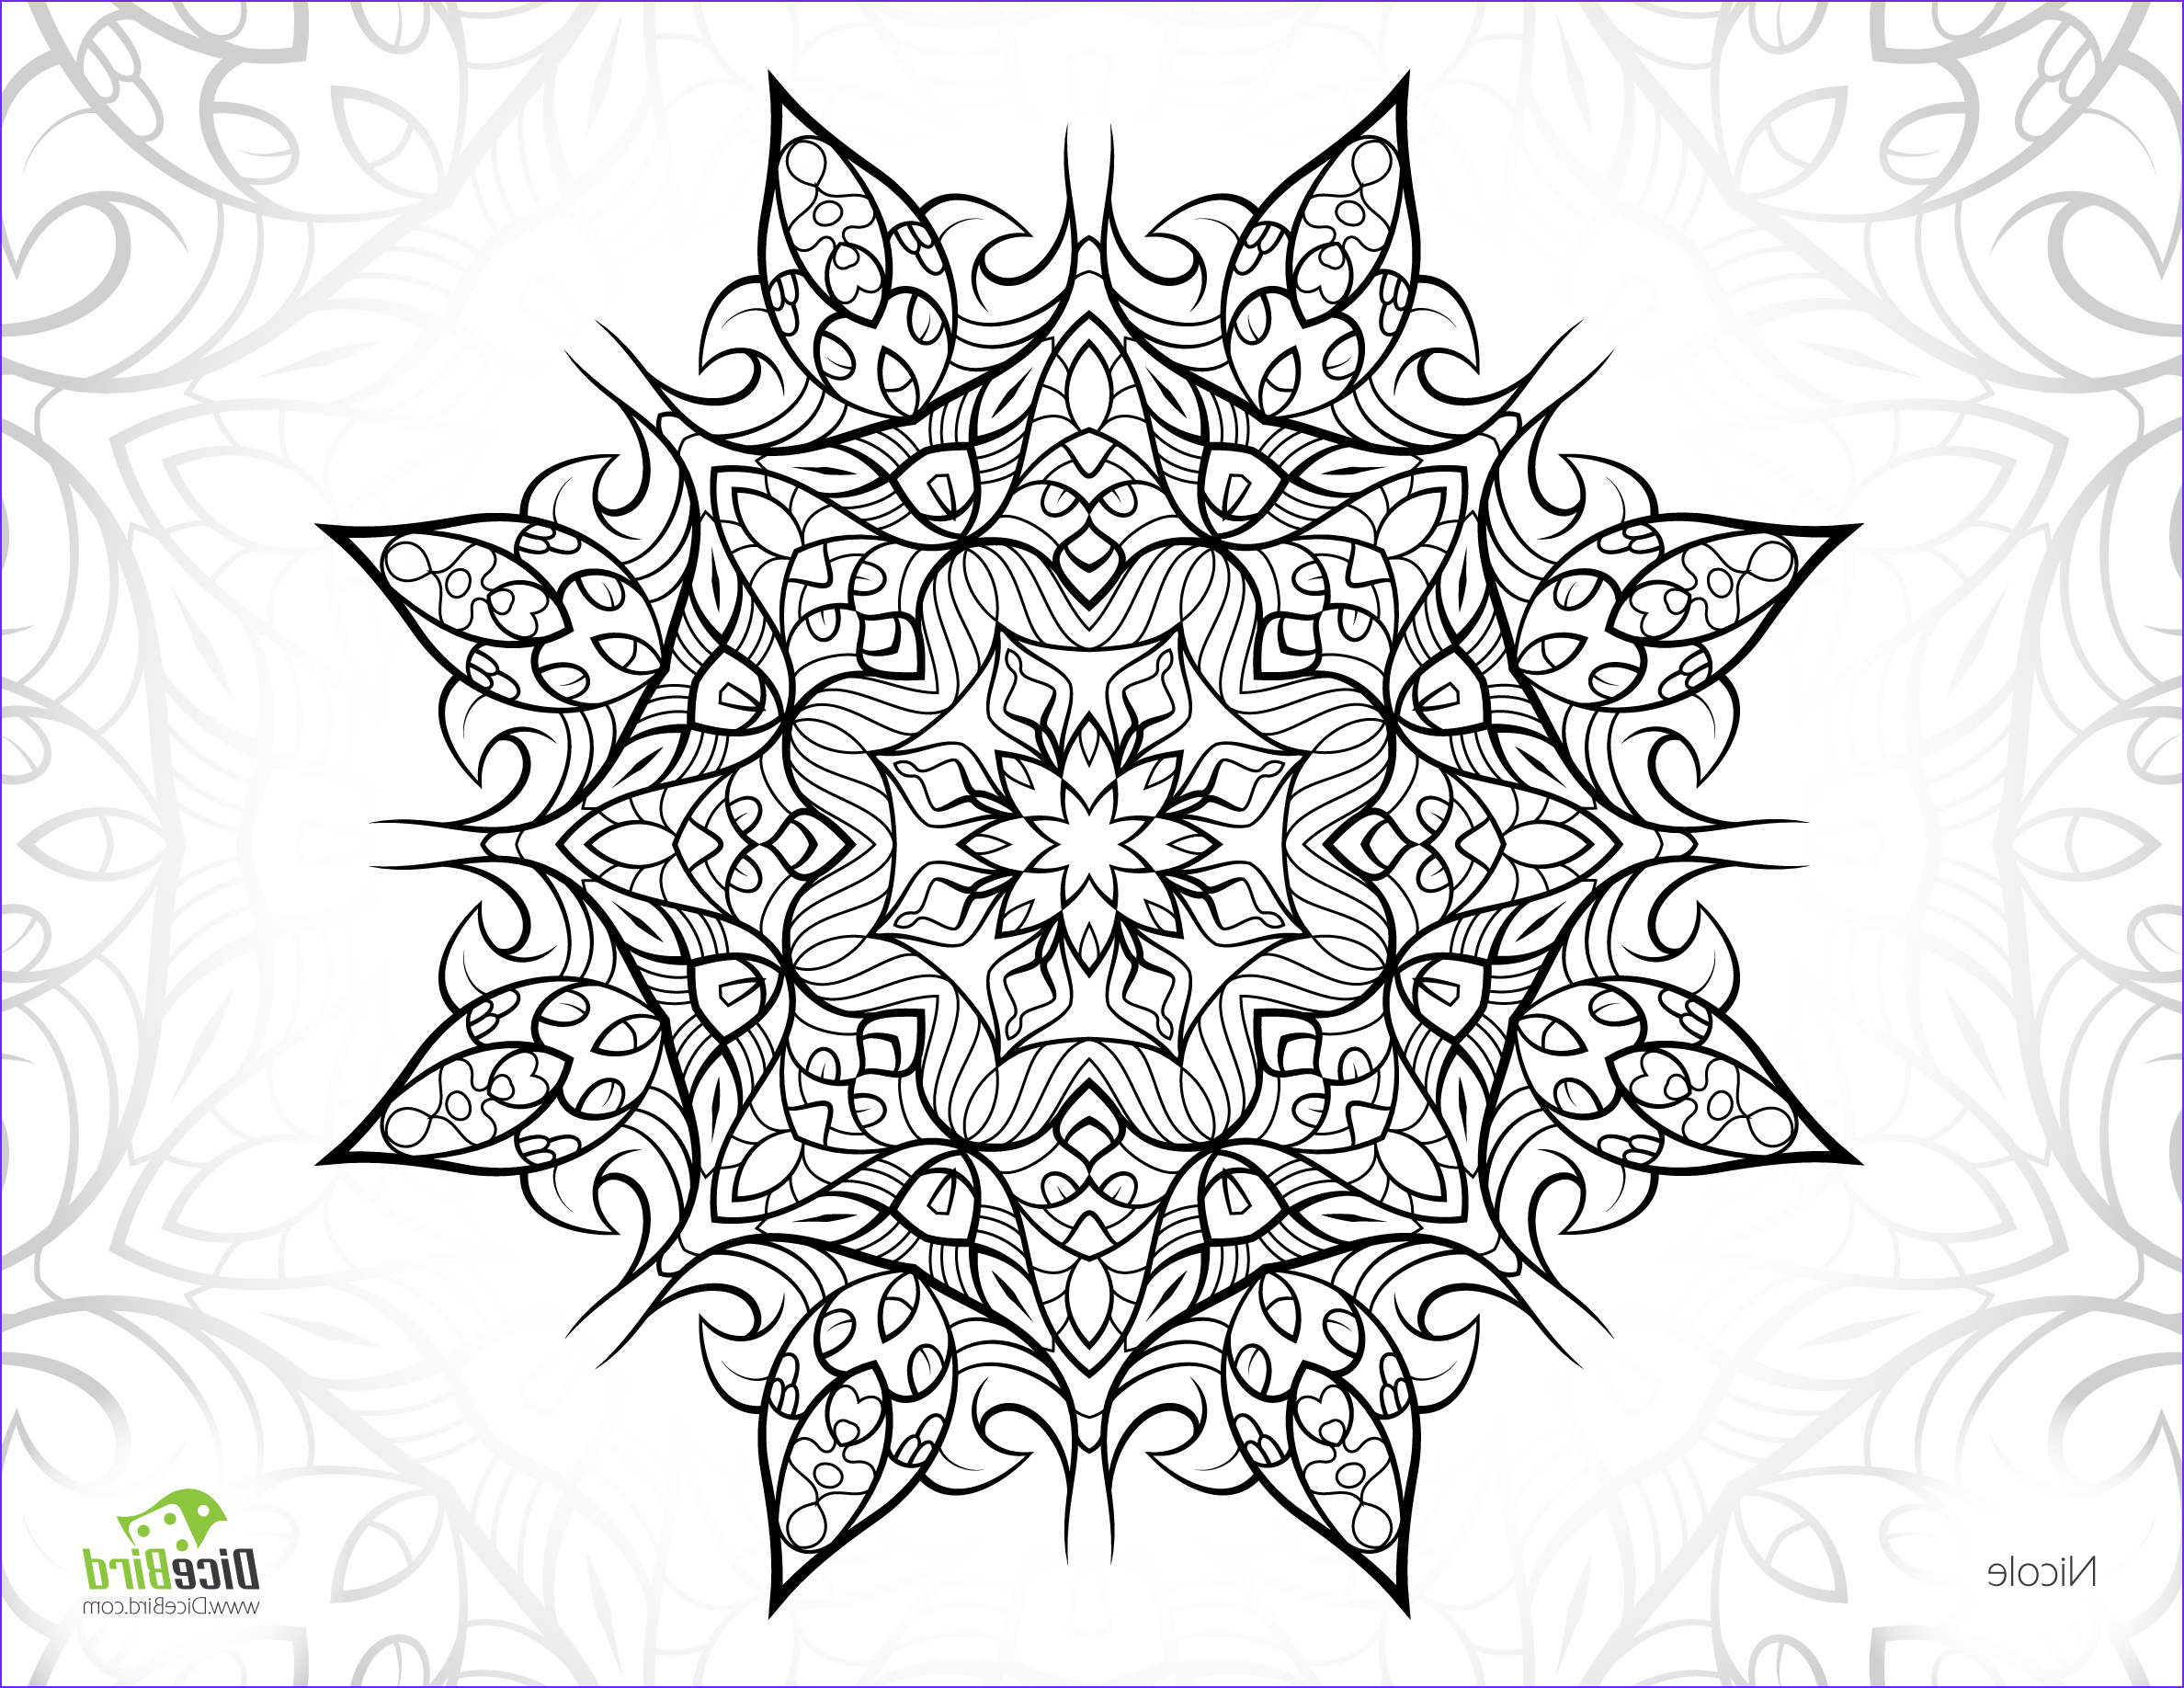 Complicated Coloring Pages for Adults Beautiful Photos Plex Adult Coloring Pages at Getdrawings